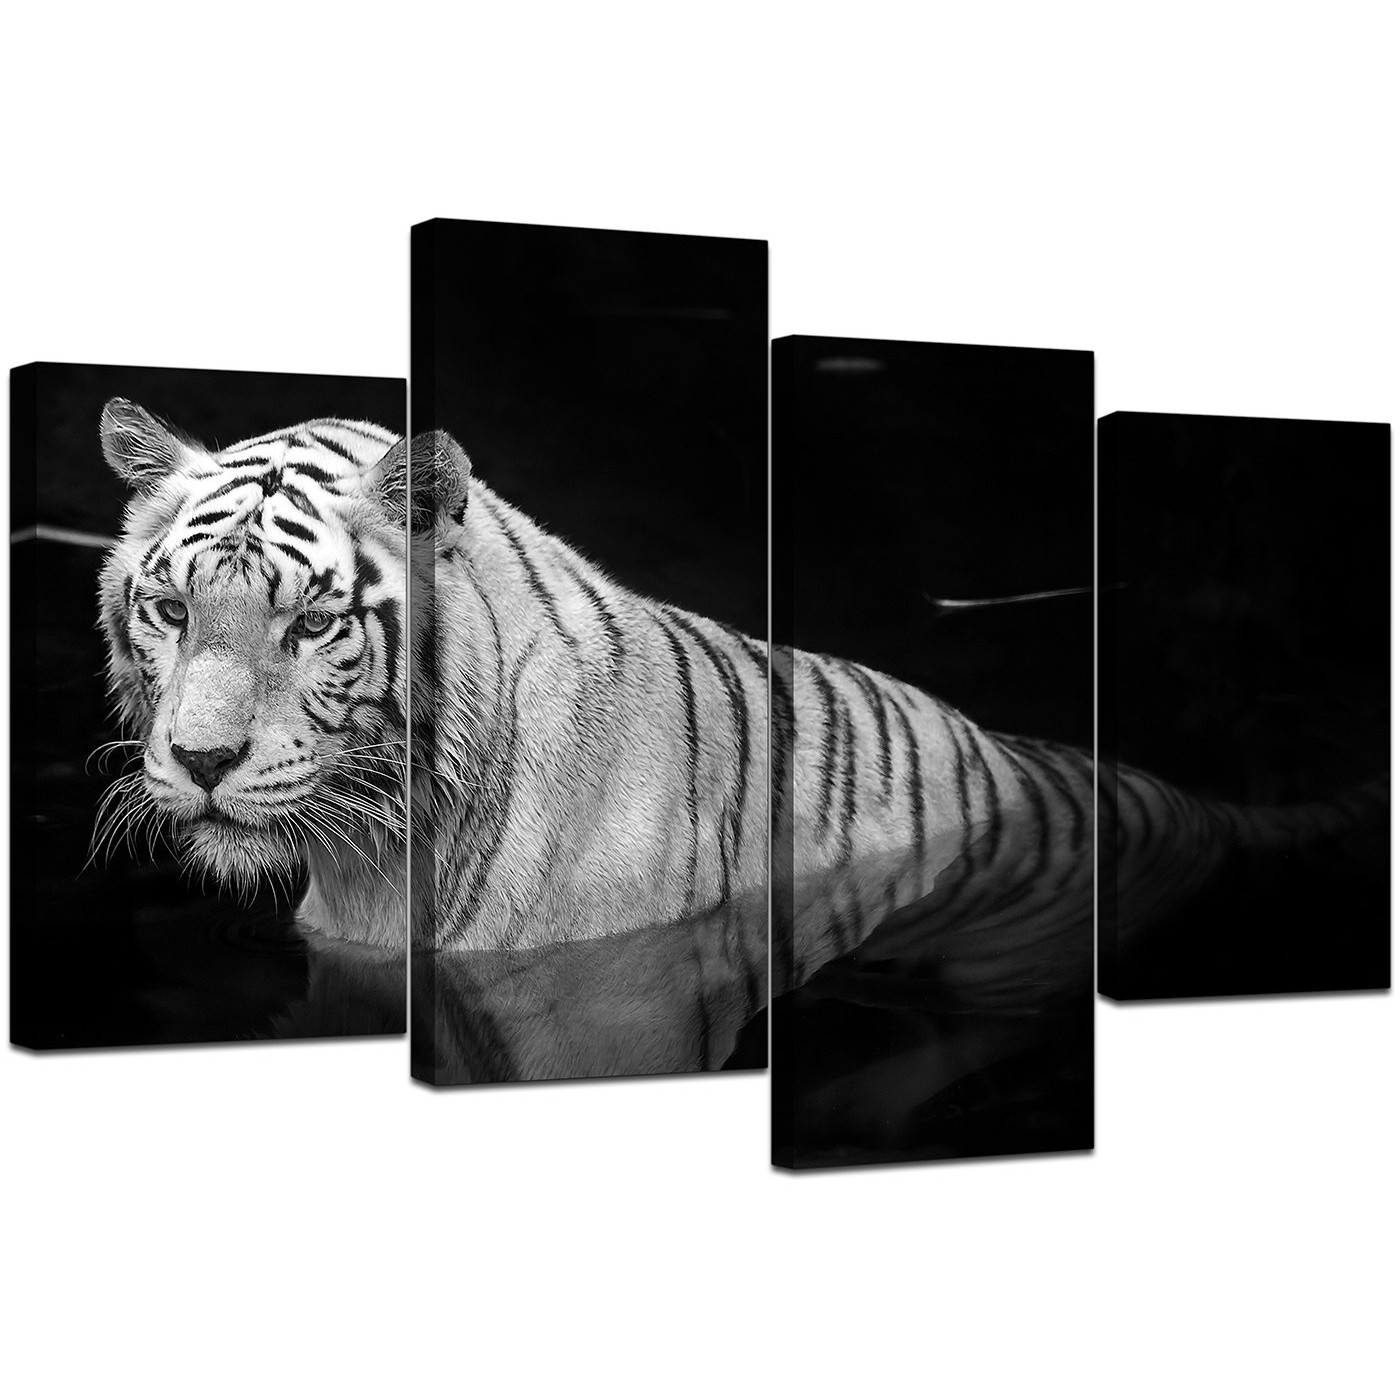 Black and White - Tiger Canvas Wall Art - For Bedroom